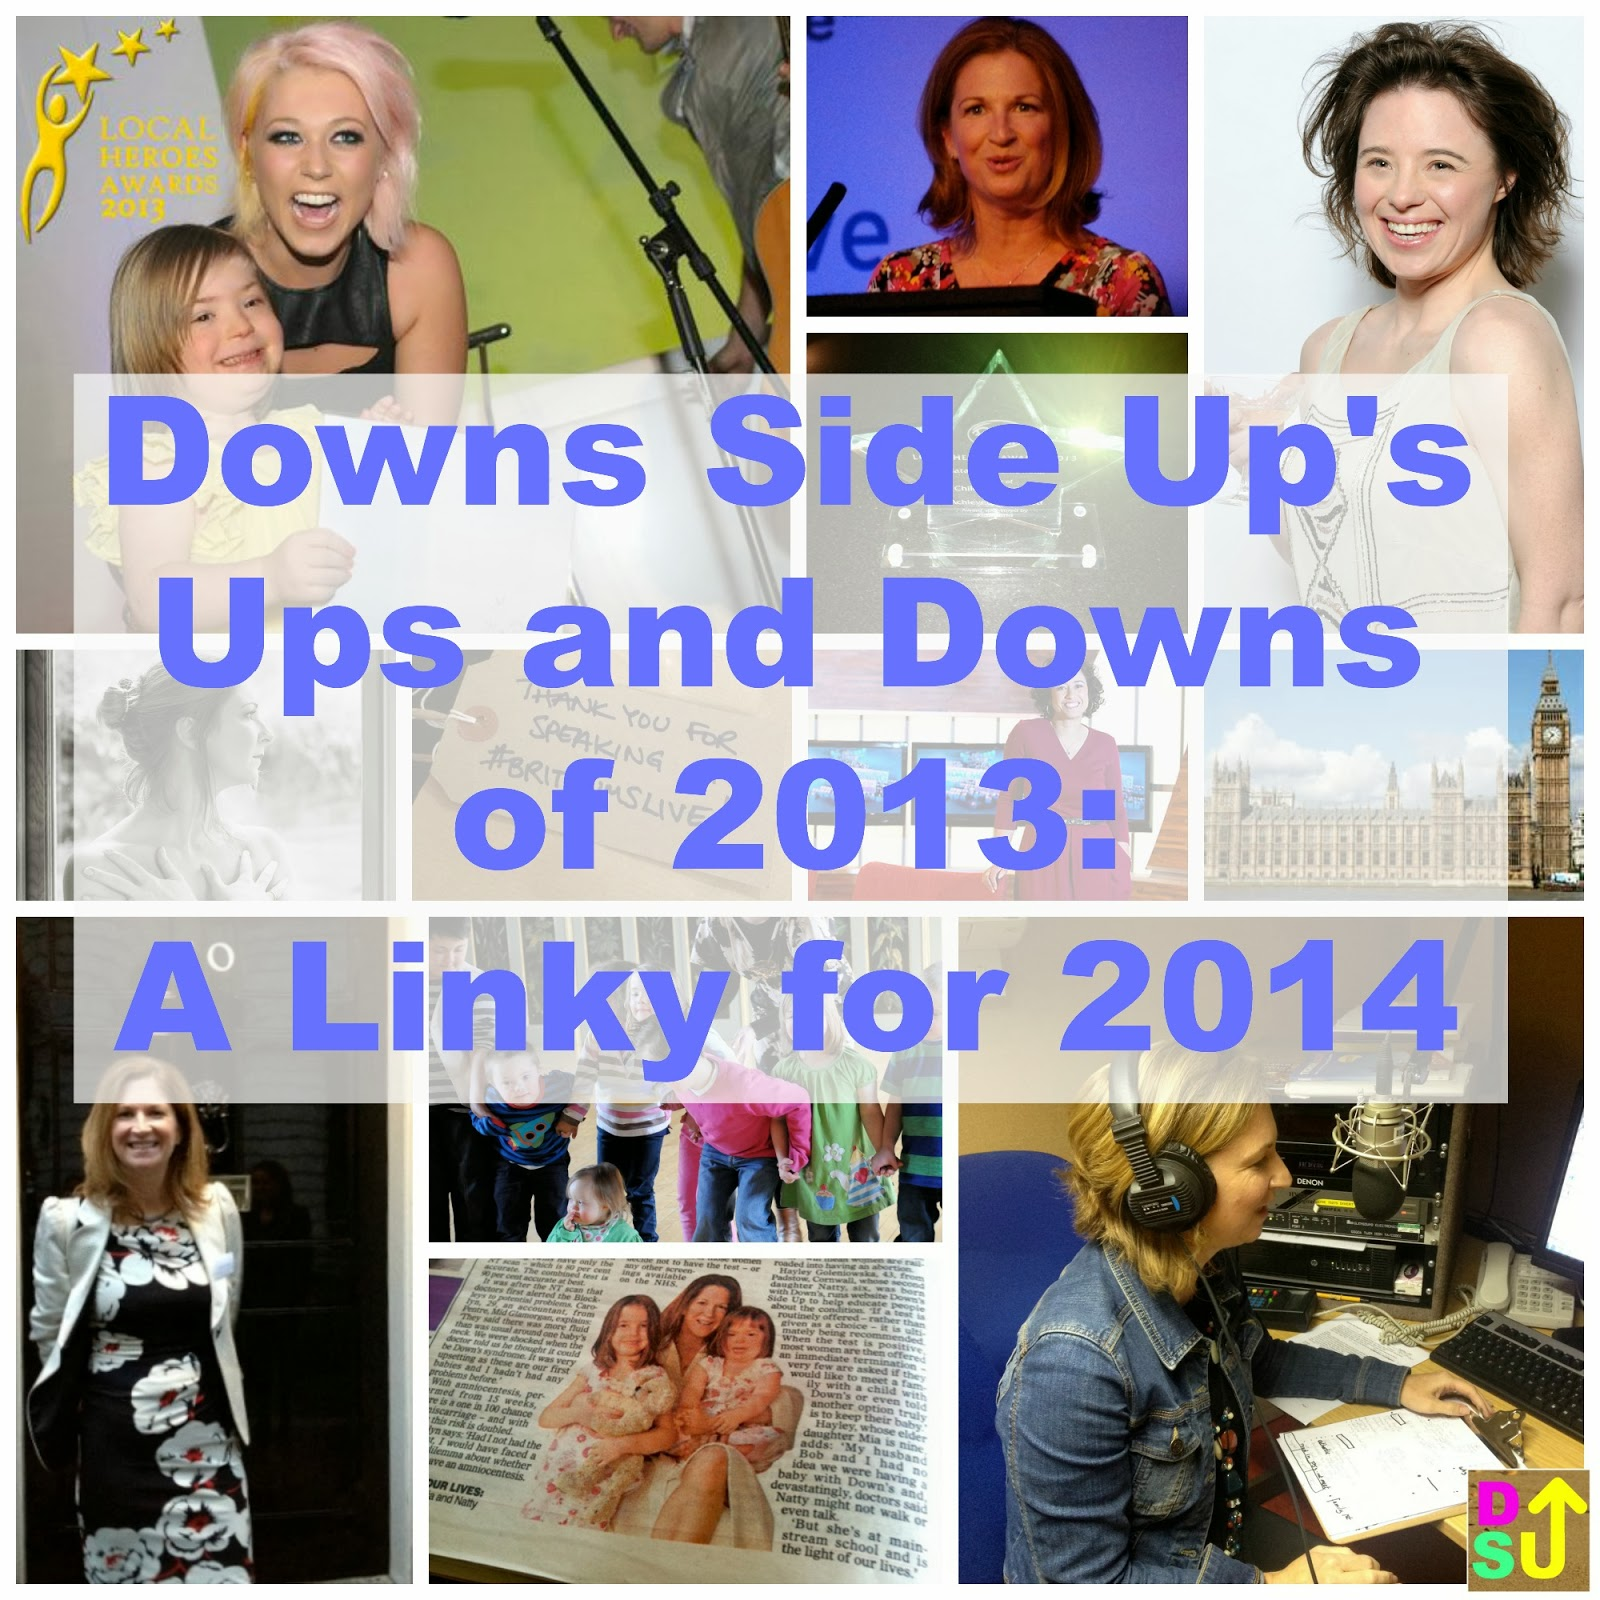 Downs Side Up's Ups and Downs in 2013: A Linky for 2014